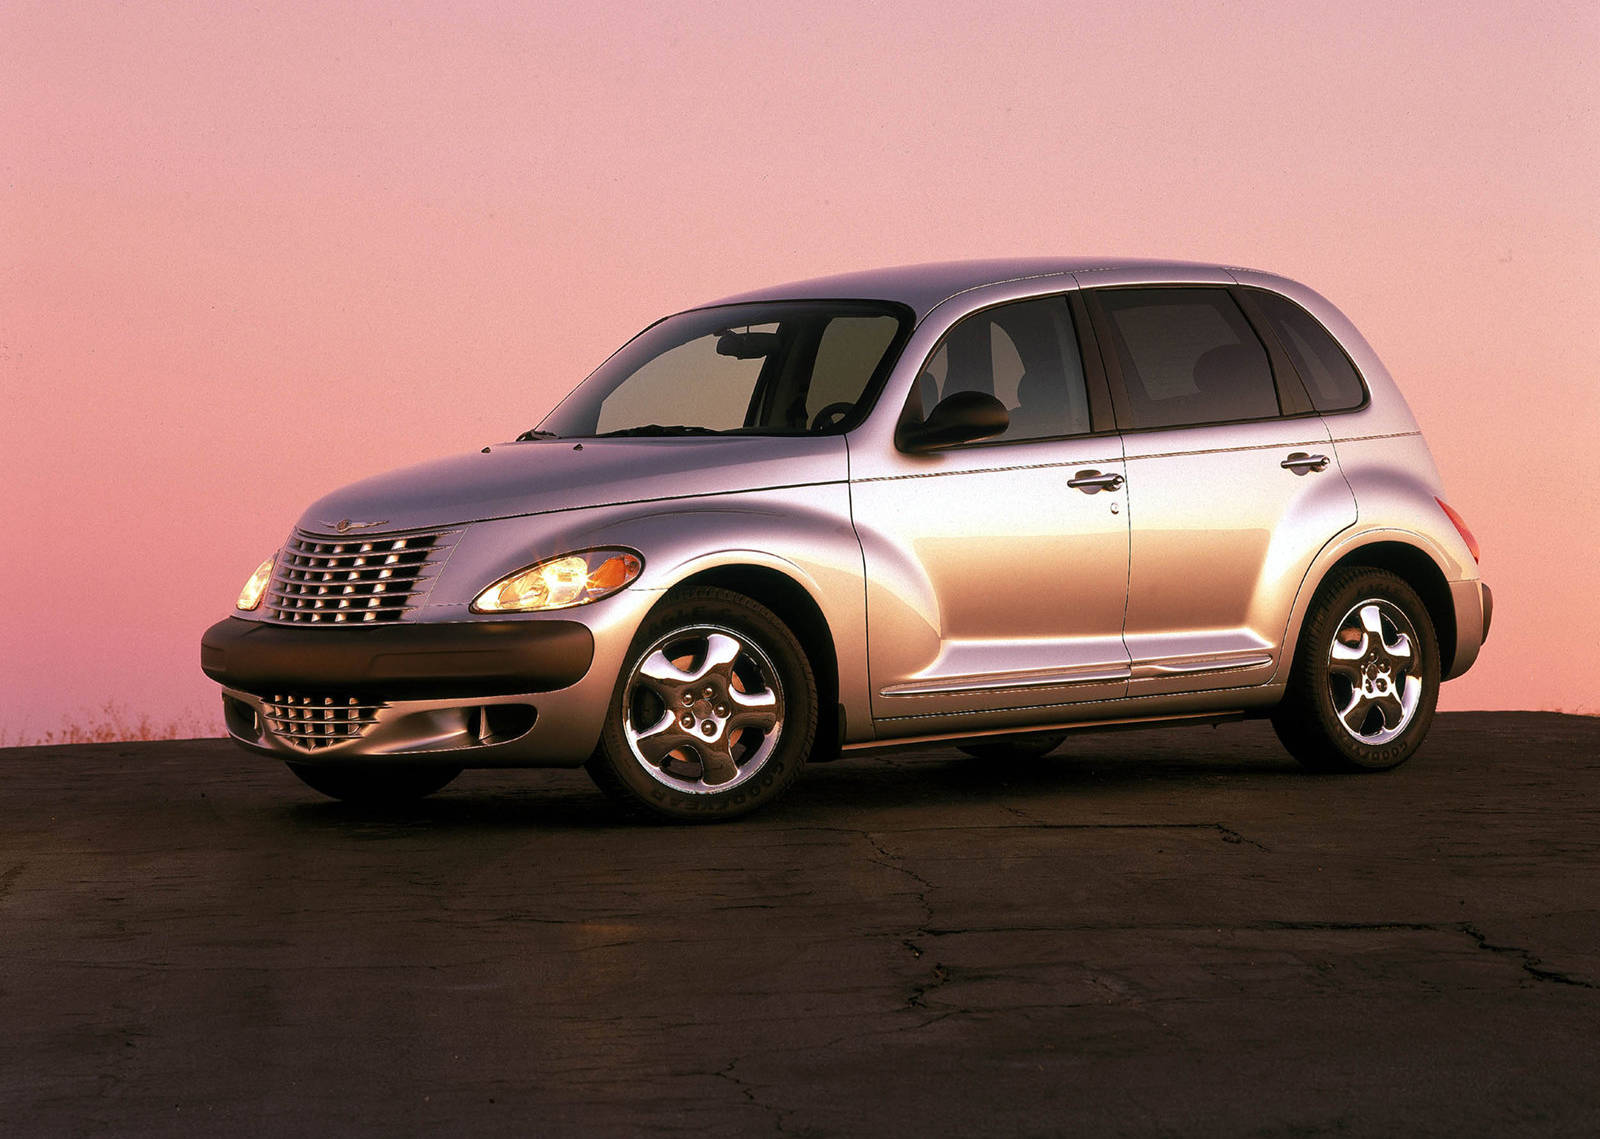 Used chrysler pt cruiser review 2000 2003 carsguide